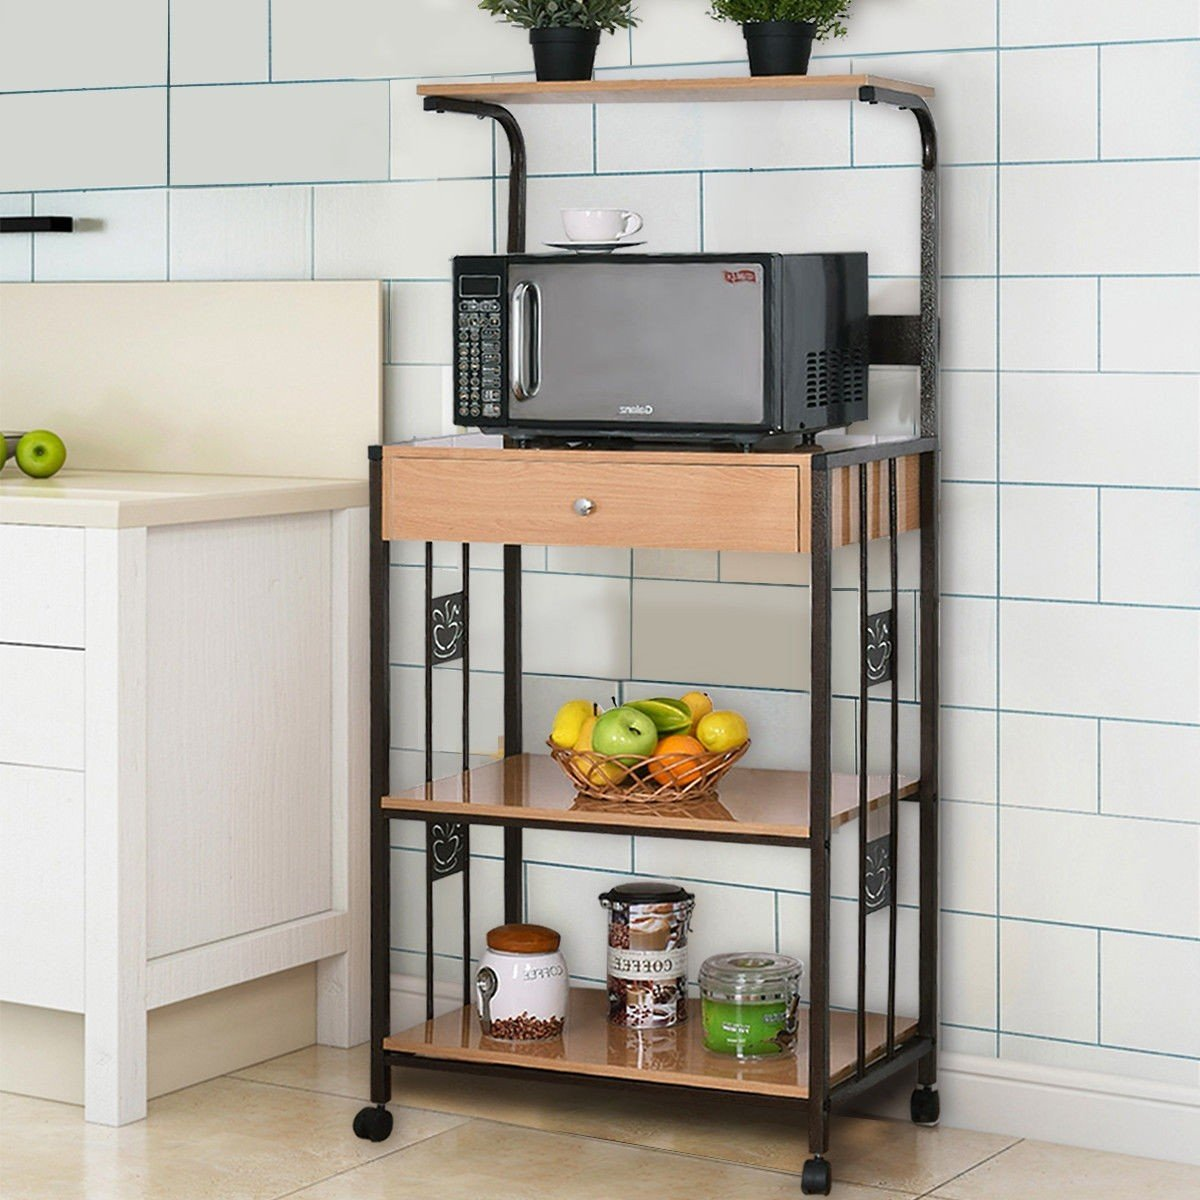 WATERJOY Bakers Rack Microwave Cart, Supreme 3-Tier Rolling Kitchen Microwave Oven Stand Storage Cart | Power Strip | Brown Metal Frame